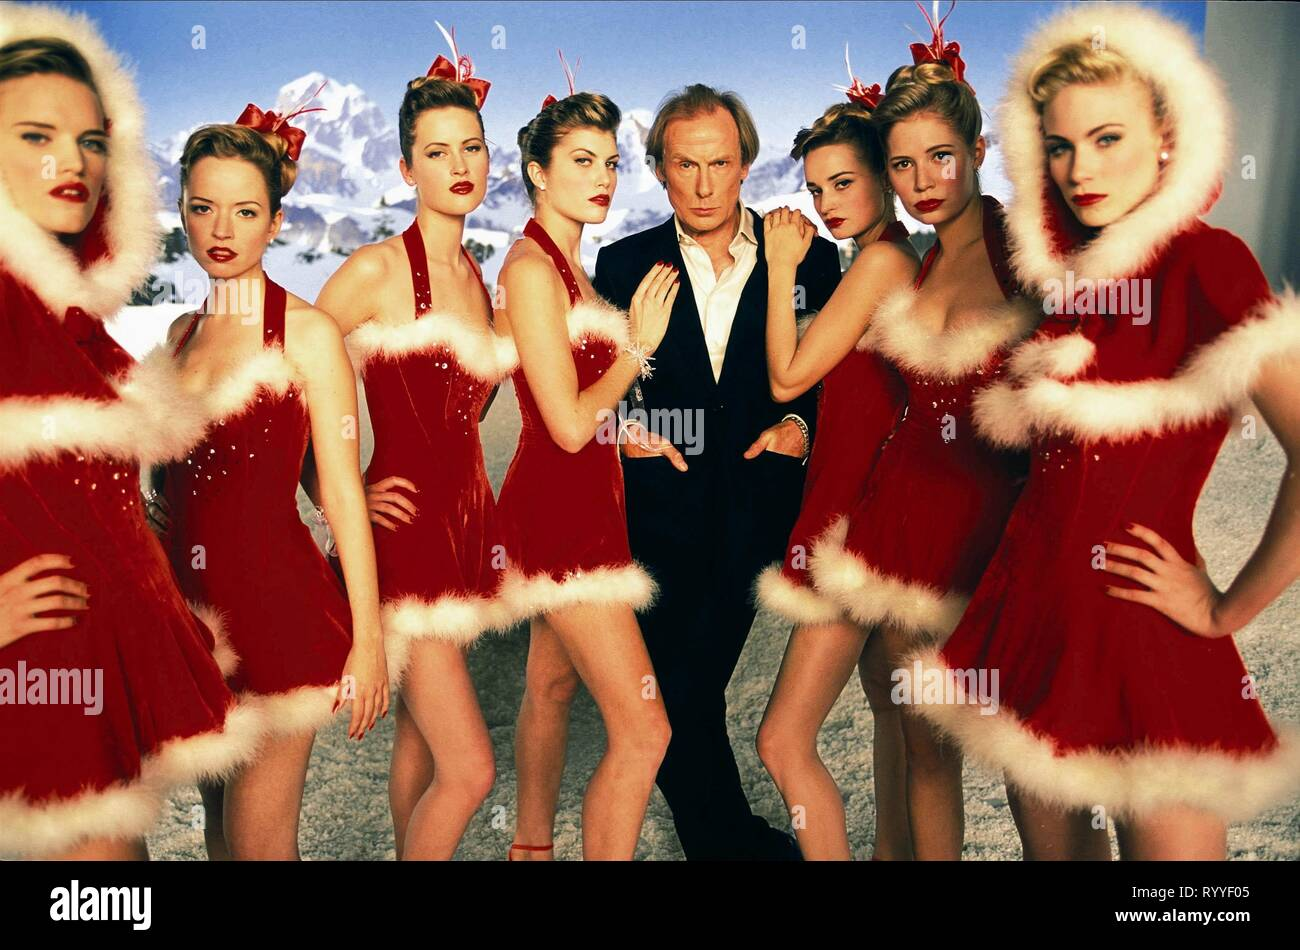 BILL NIGHY, LOVE ACTUALLY, 2003 - Stock Image